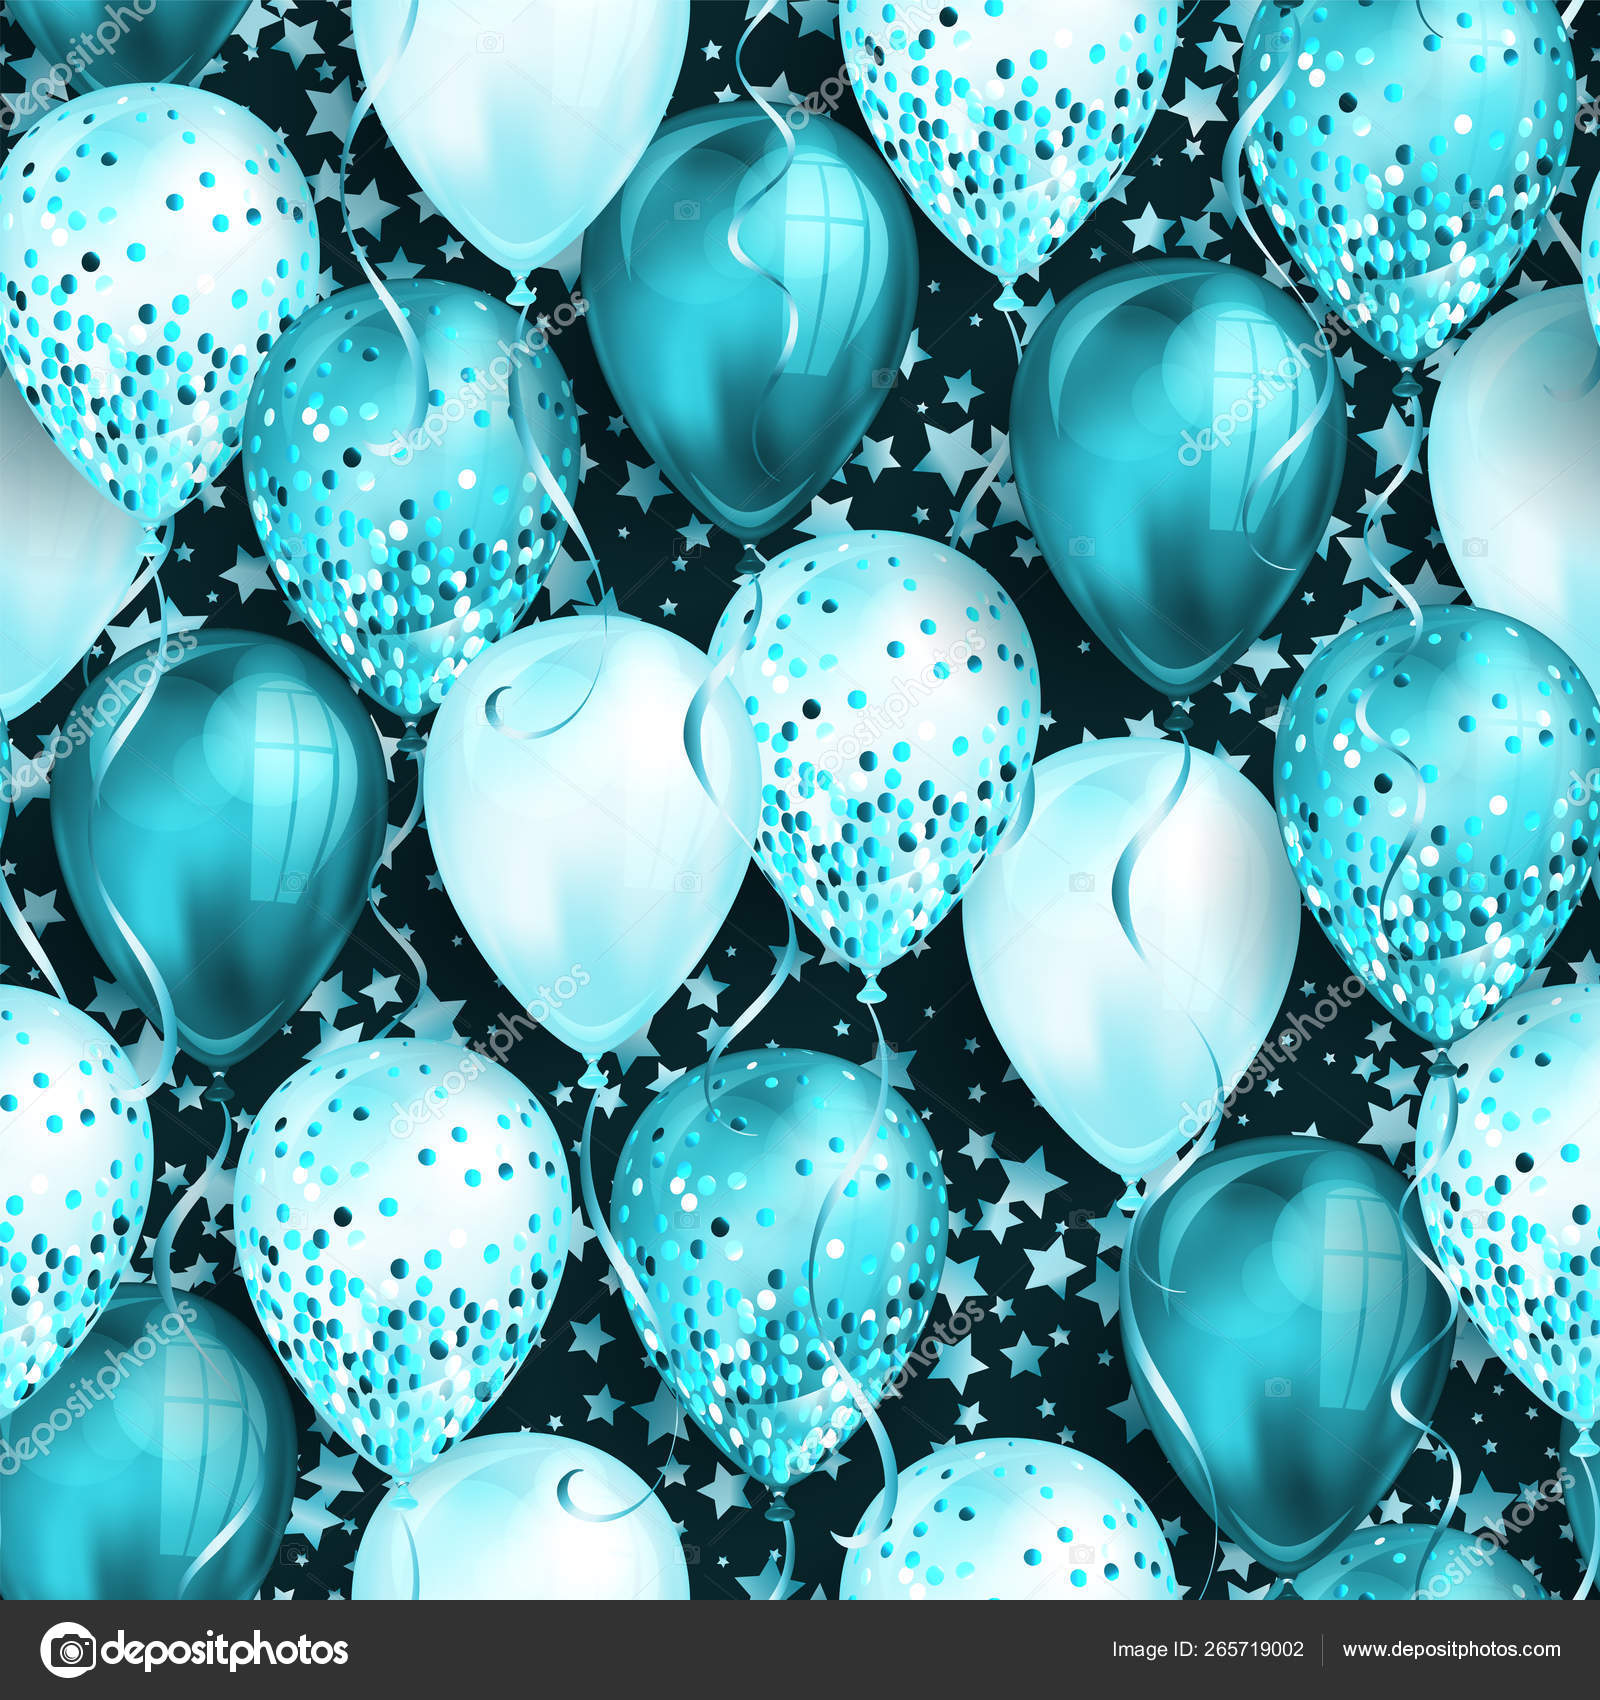 seamless pattern with stars and shiny blue realistic 3d helium balloons for your design glossy balloons with glitter and ribbon perfect background for birthday party brochures invitation card vector image by c